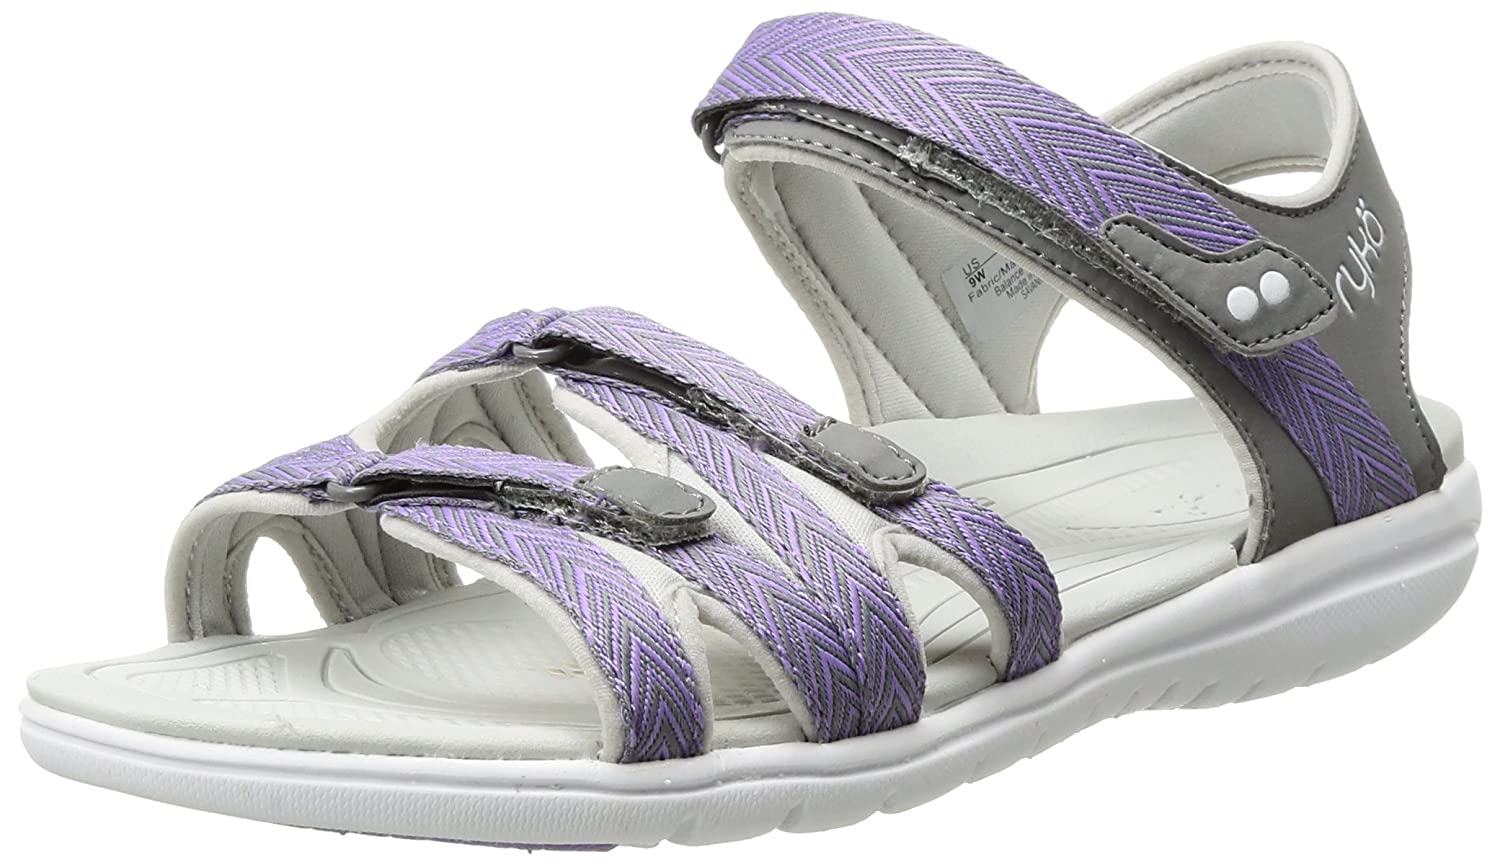 Ryka Women's Savannah Sandal B01KWH6FUE 9.5 W US|Grey/Purple